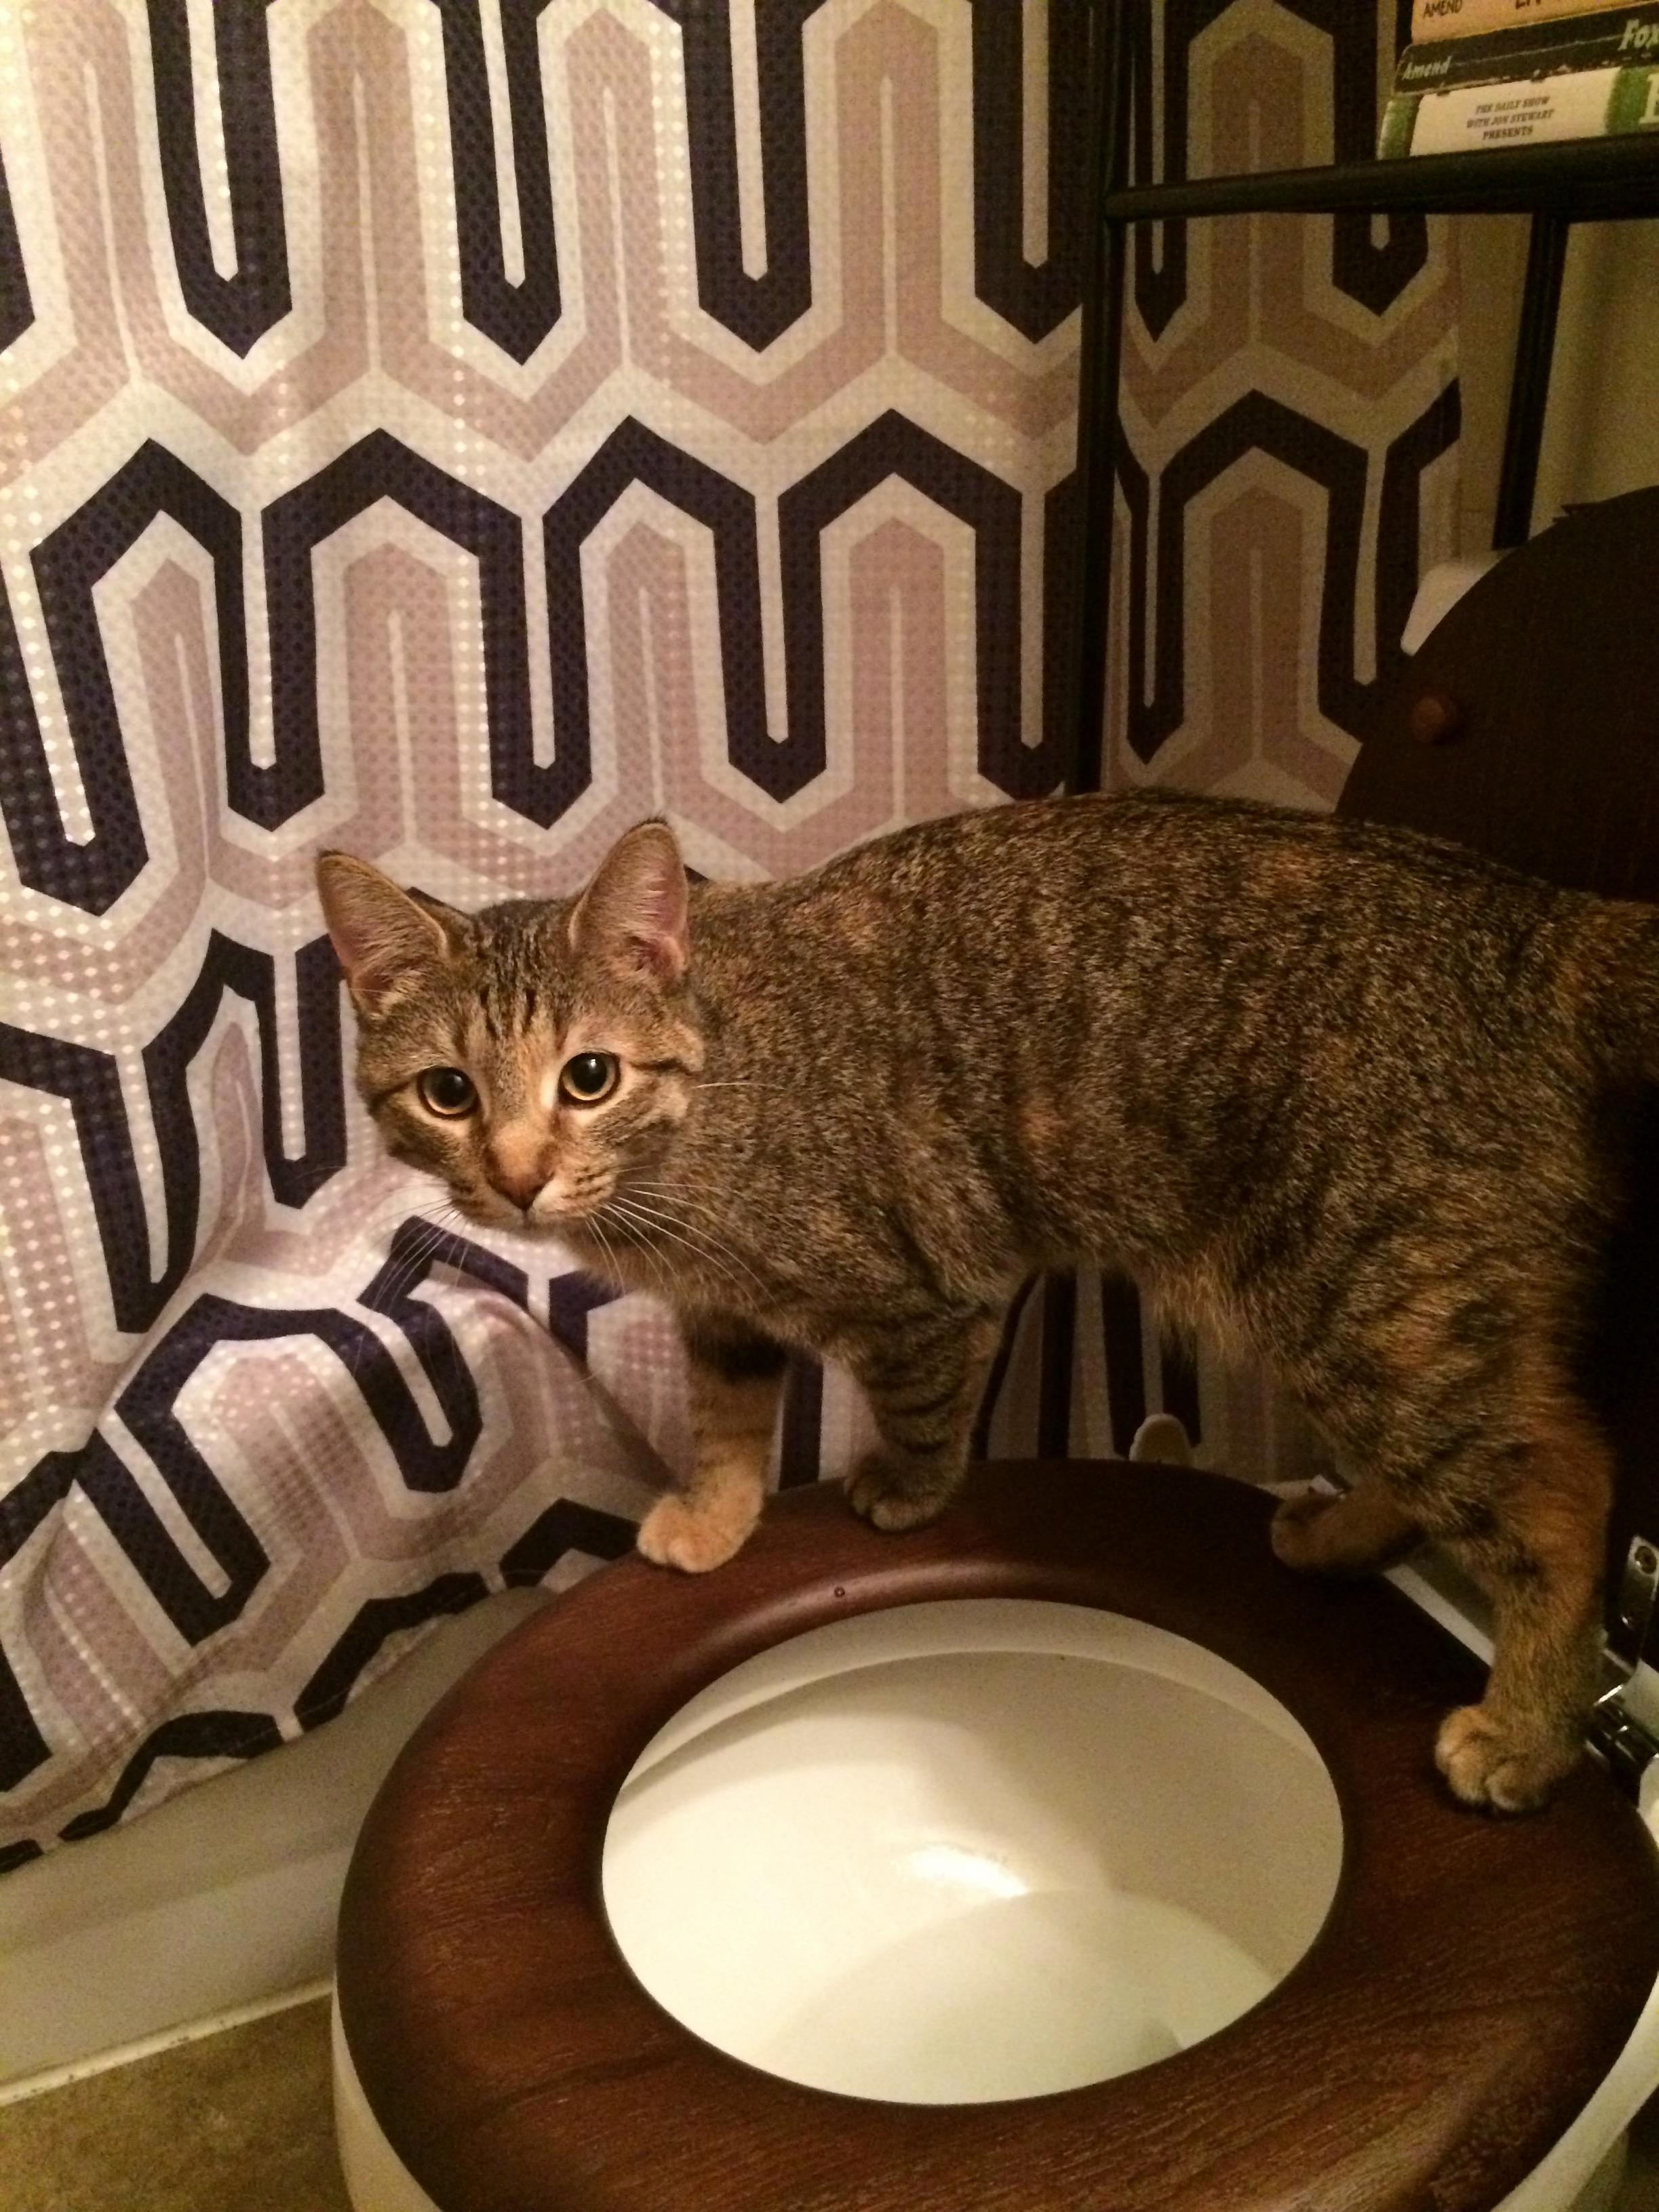 My wife and i have finally finished training our cat ripley to use a toilet instead of a litter box. ama about toilet training for cats